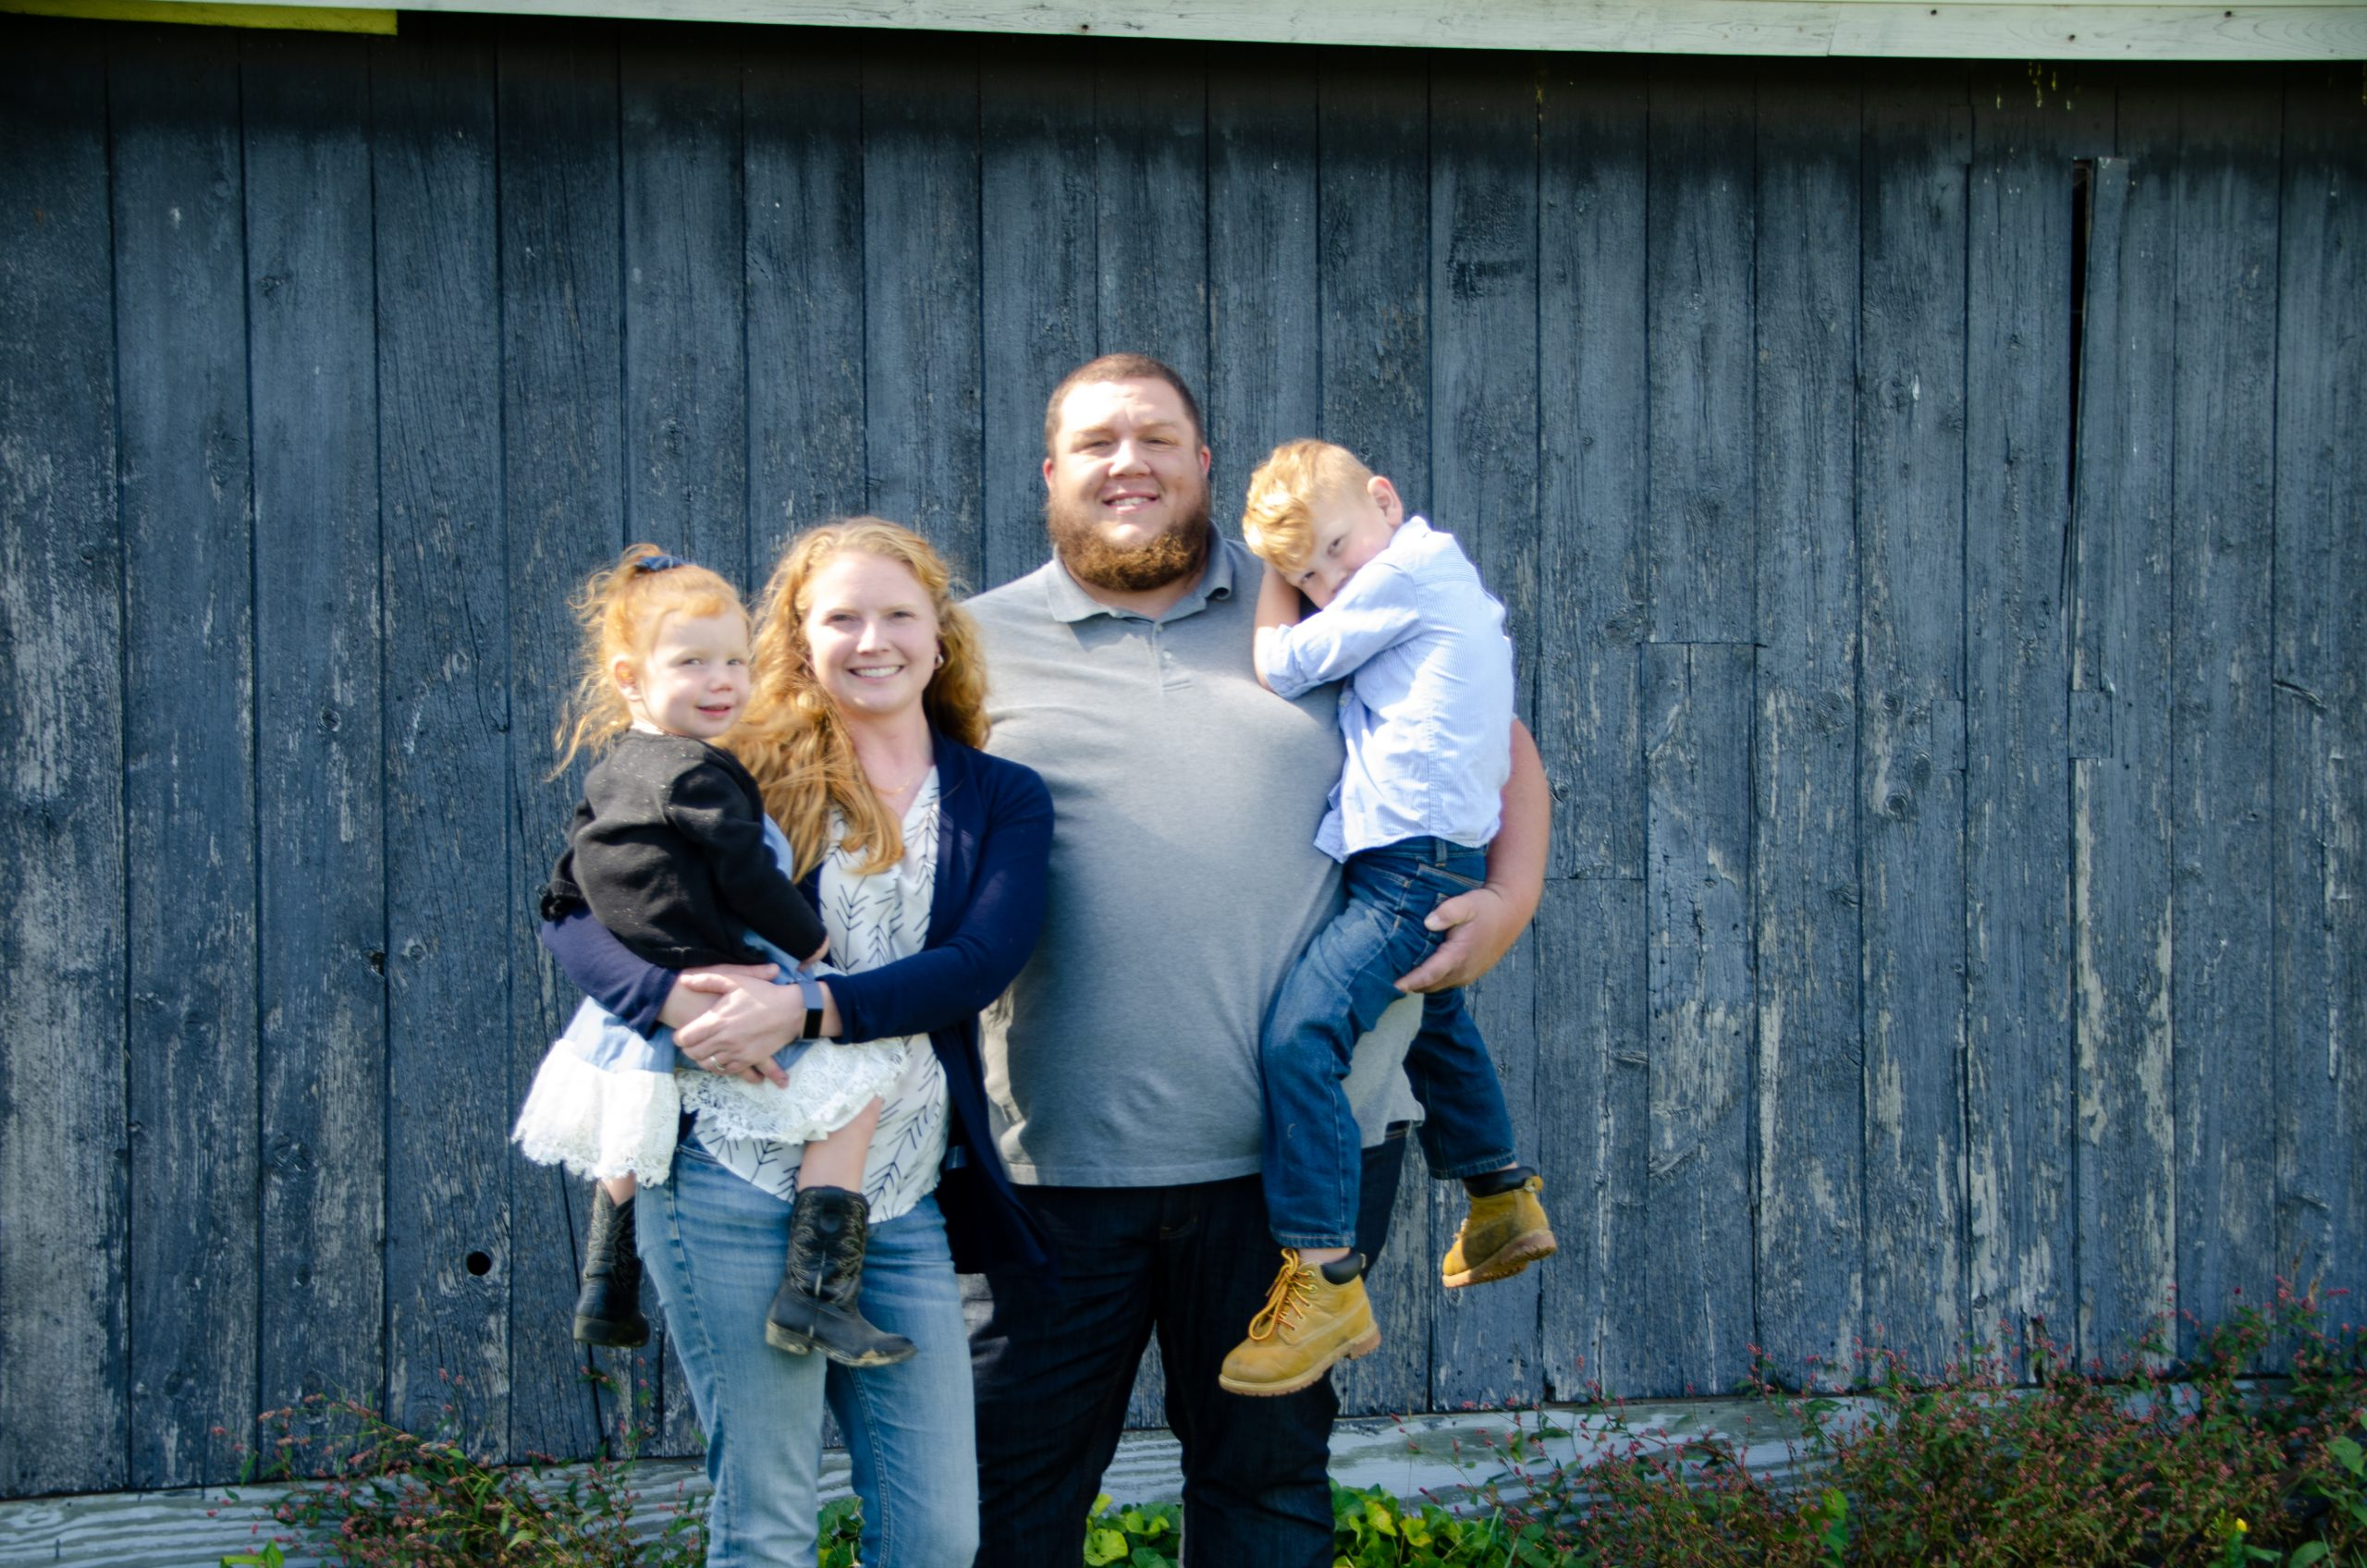 The Rupprecht Family in front of a grey barn wall.